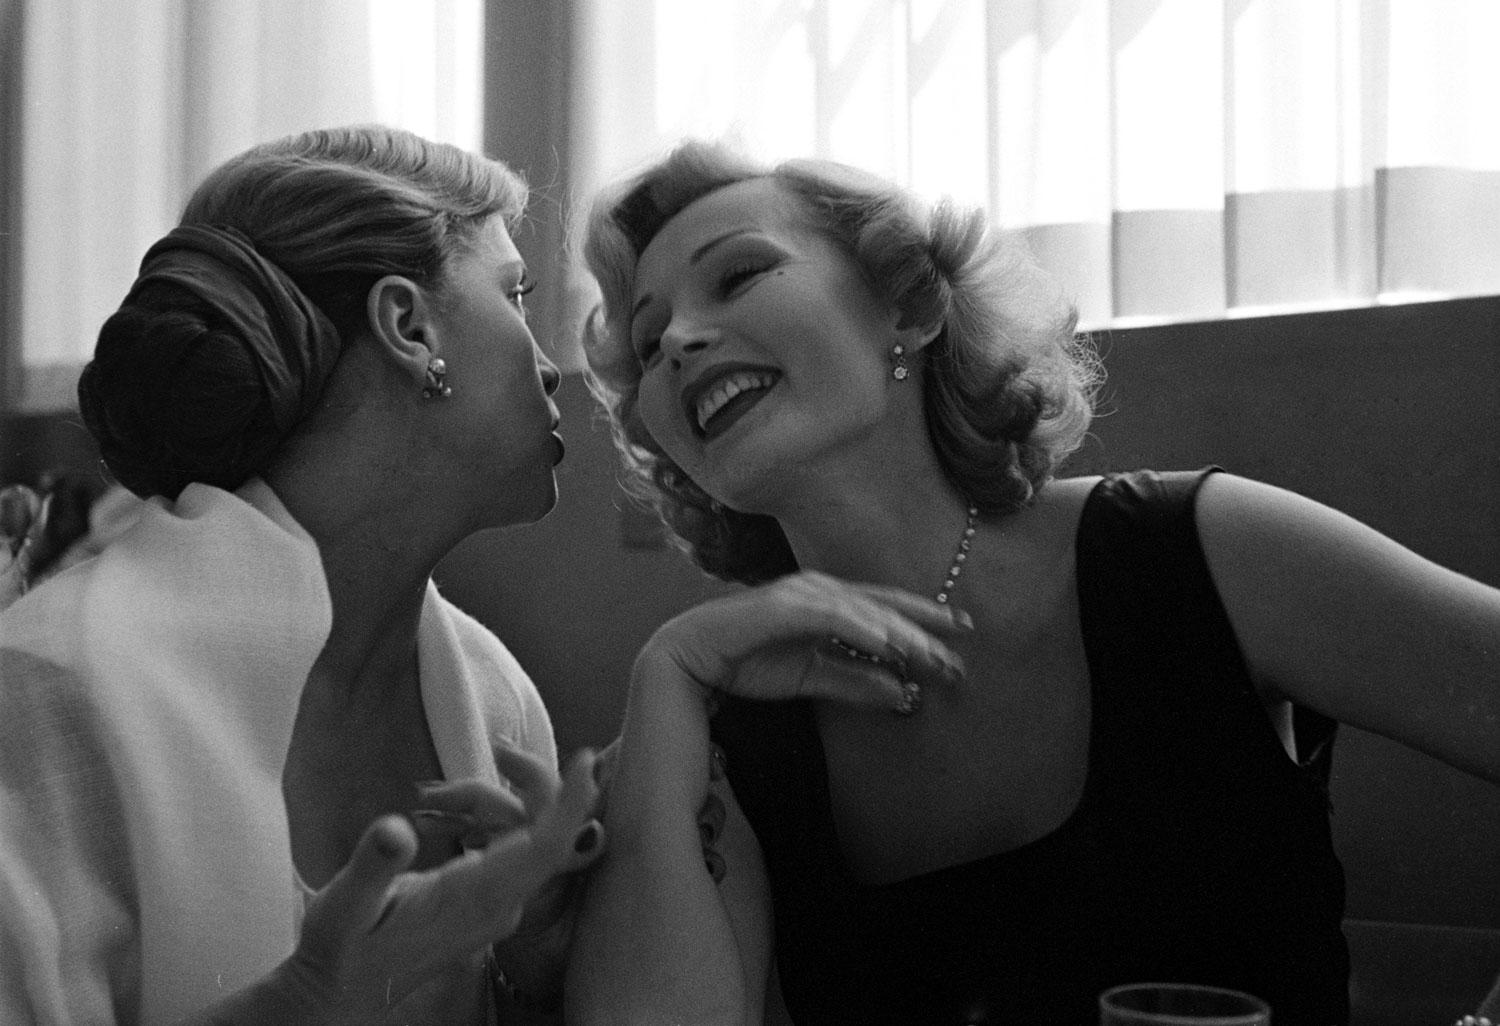 Zsa Zsa Gabor at lunch with French actress Denise Darcel, California, 1951.